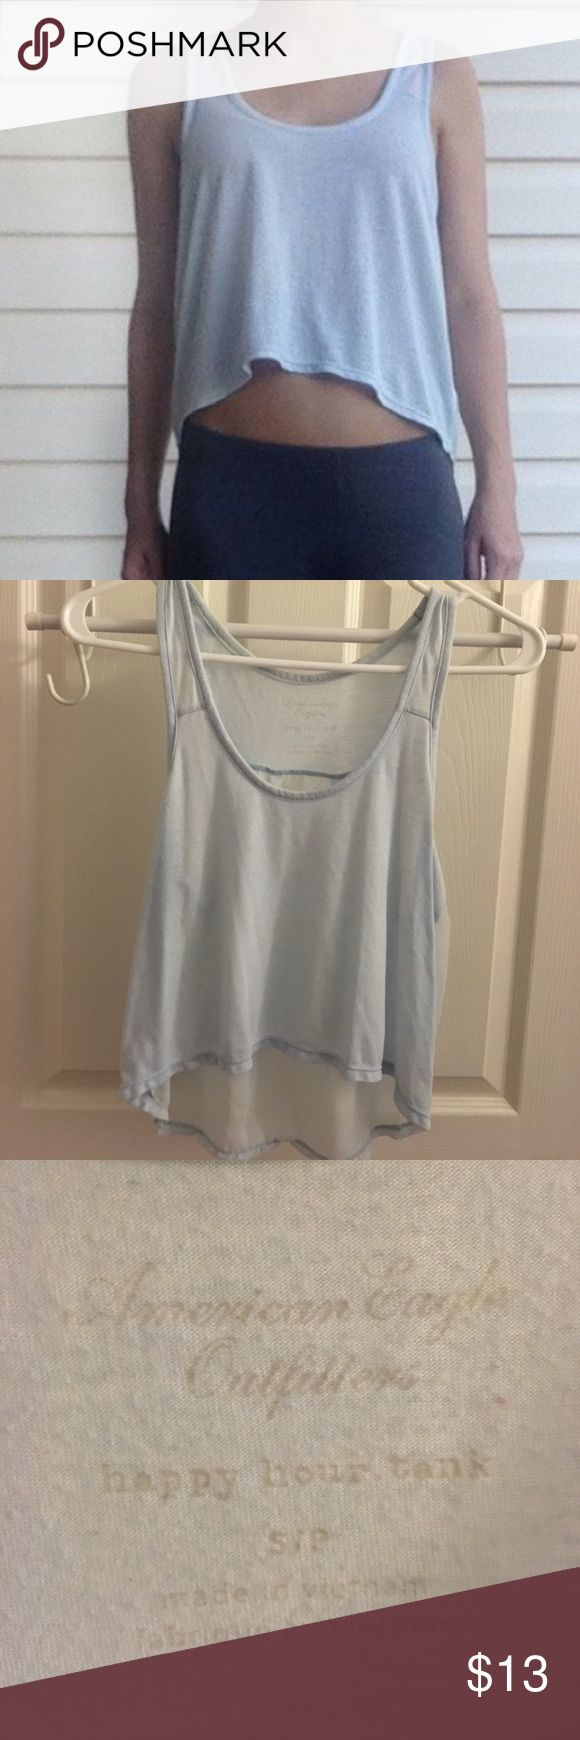 💙AMERICAN EAGLE OUTFITTERS Happy Hour Tank Small 💙AMERICAN EAGLE OUTFITTERS Happy Hour Tank Size: Small 💙 Note: Sheer in the back. Great with a bralette underneath 👍🏻 American Eagle Outfitters Tops Tank Tops